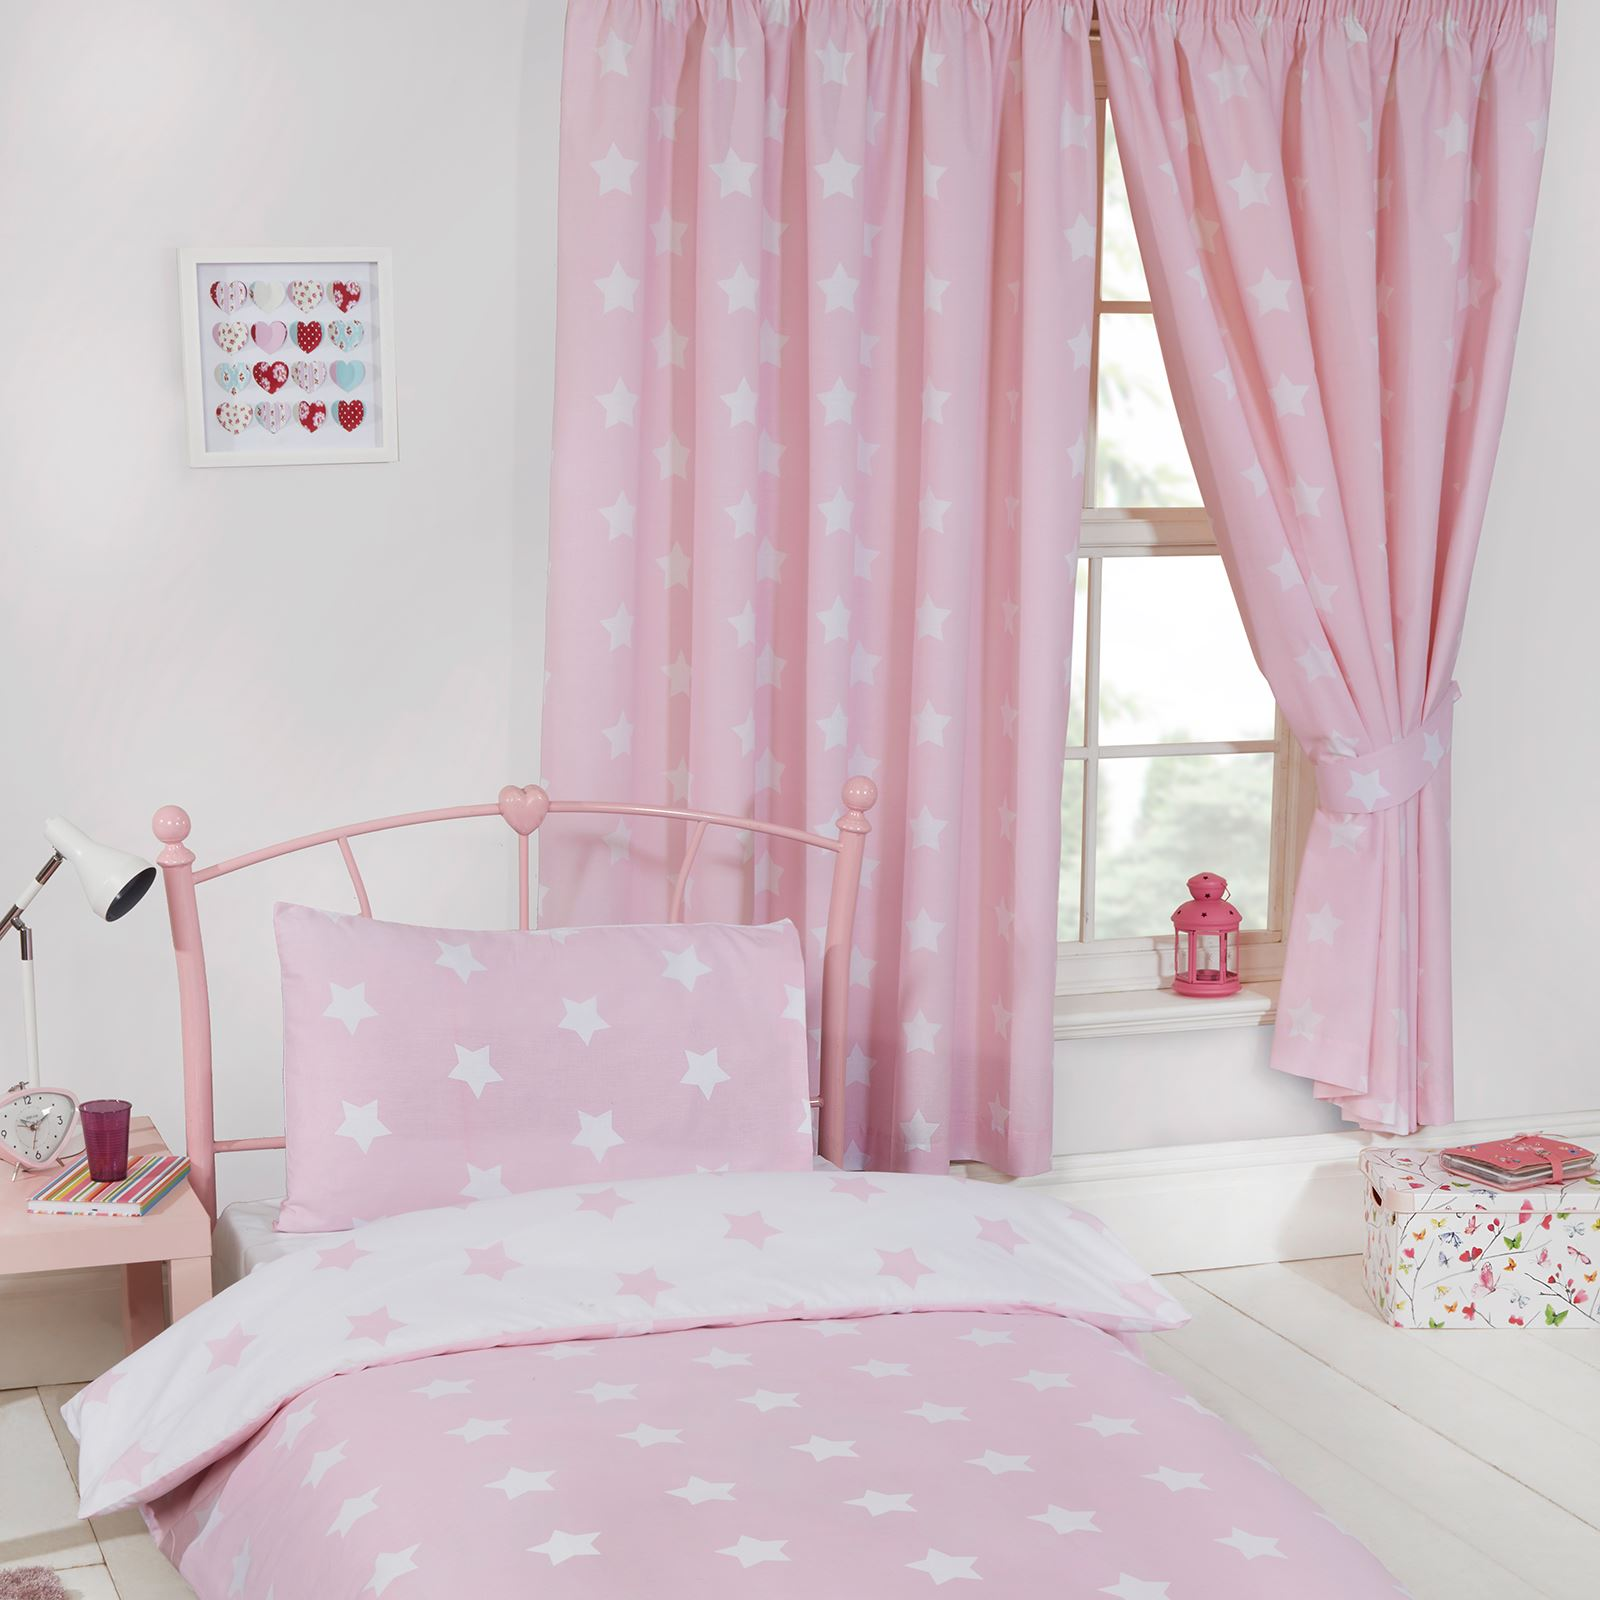 PINK & WHITE STARS BEDROOM